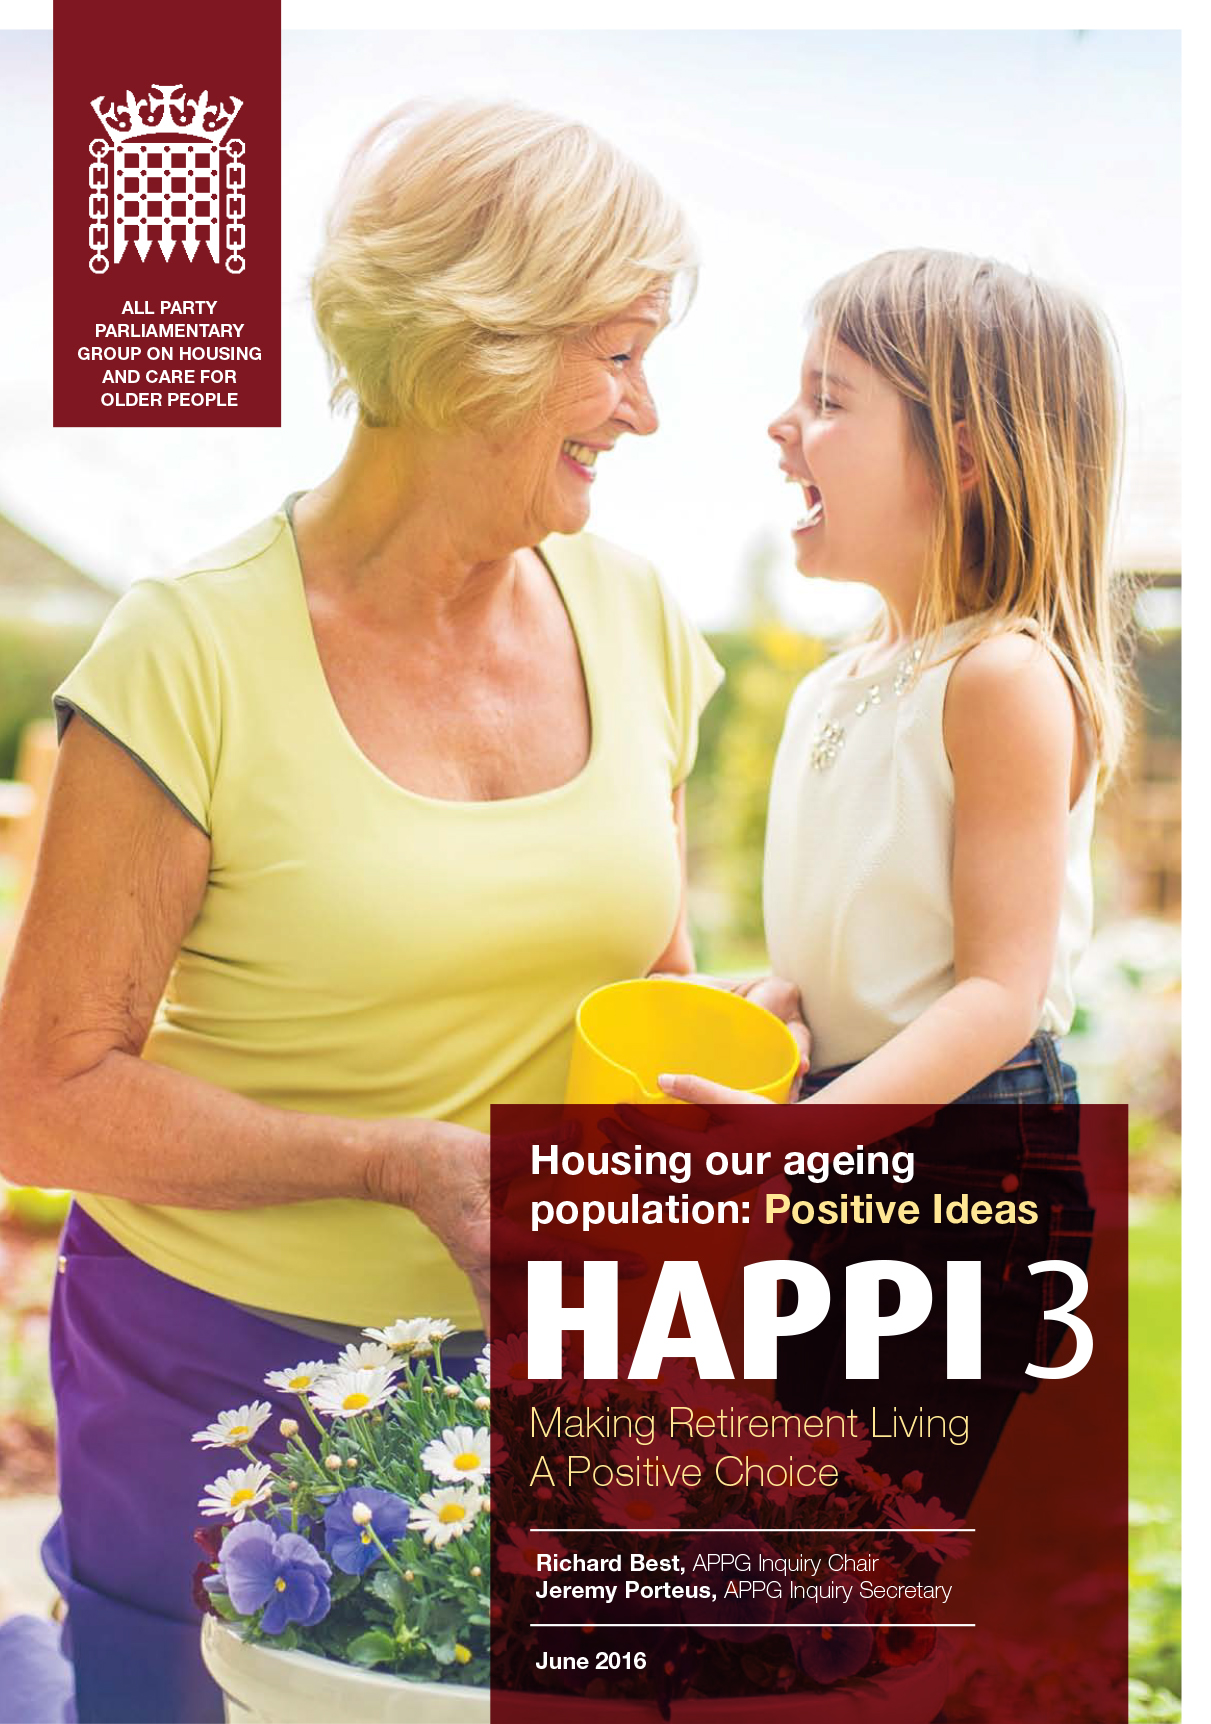 Housing our Ageing Population: Positive Ideas (HAPPI 3) - Making retirement living a positive choice